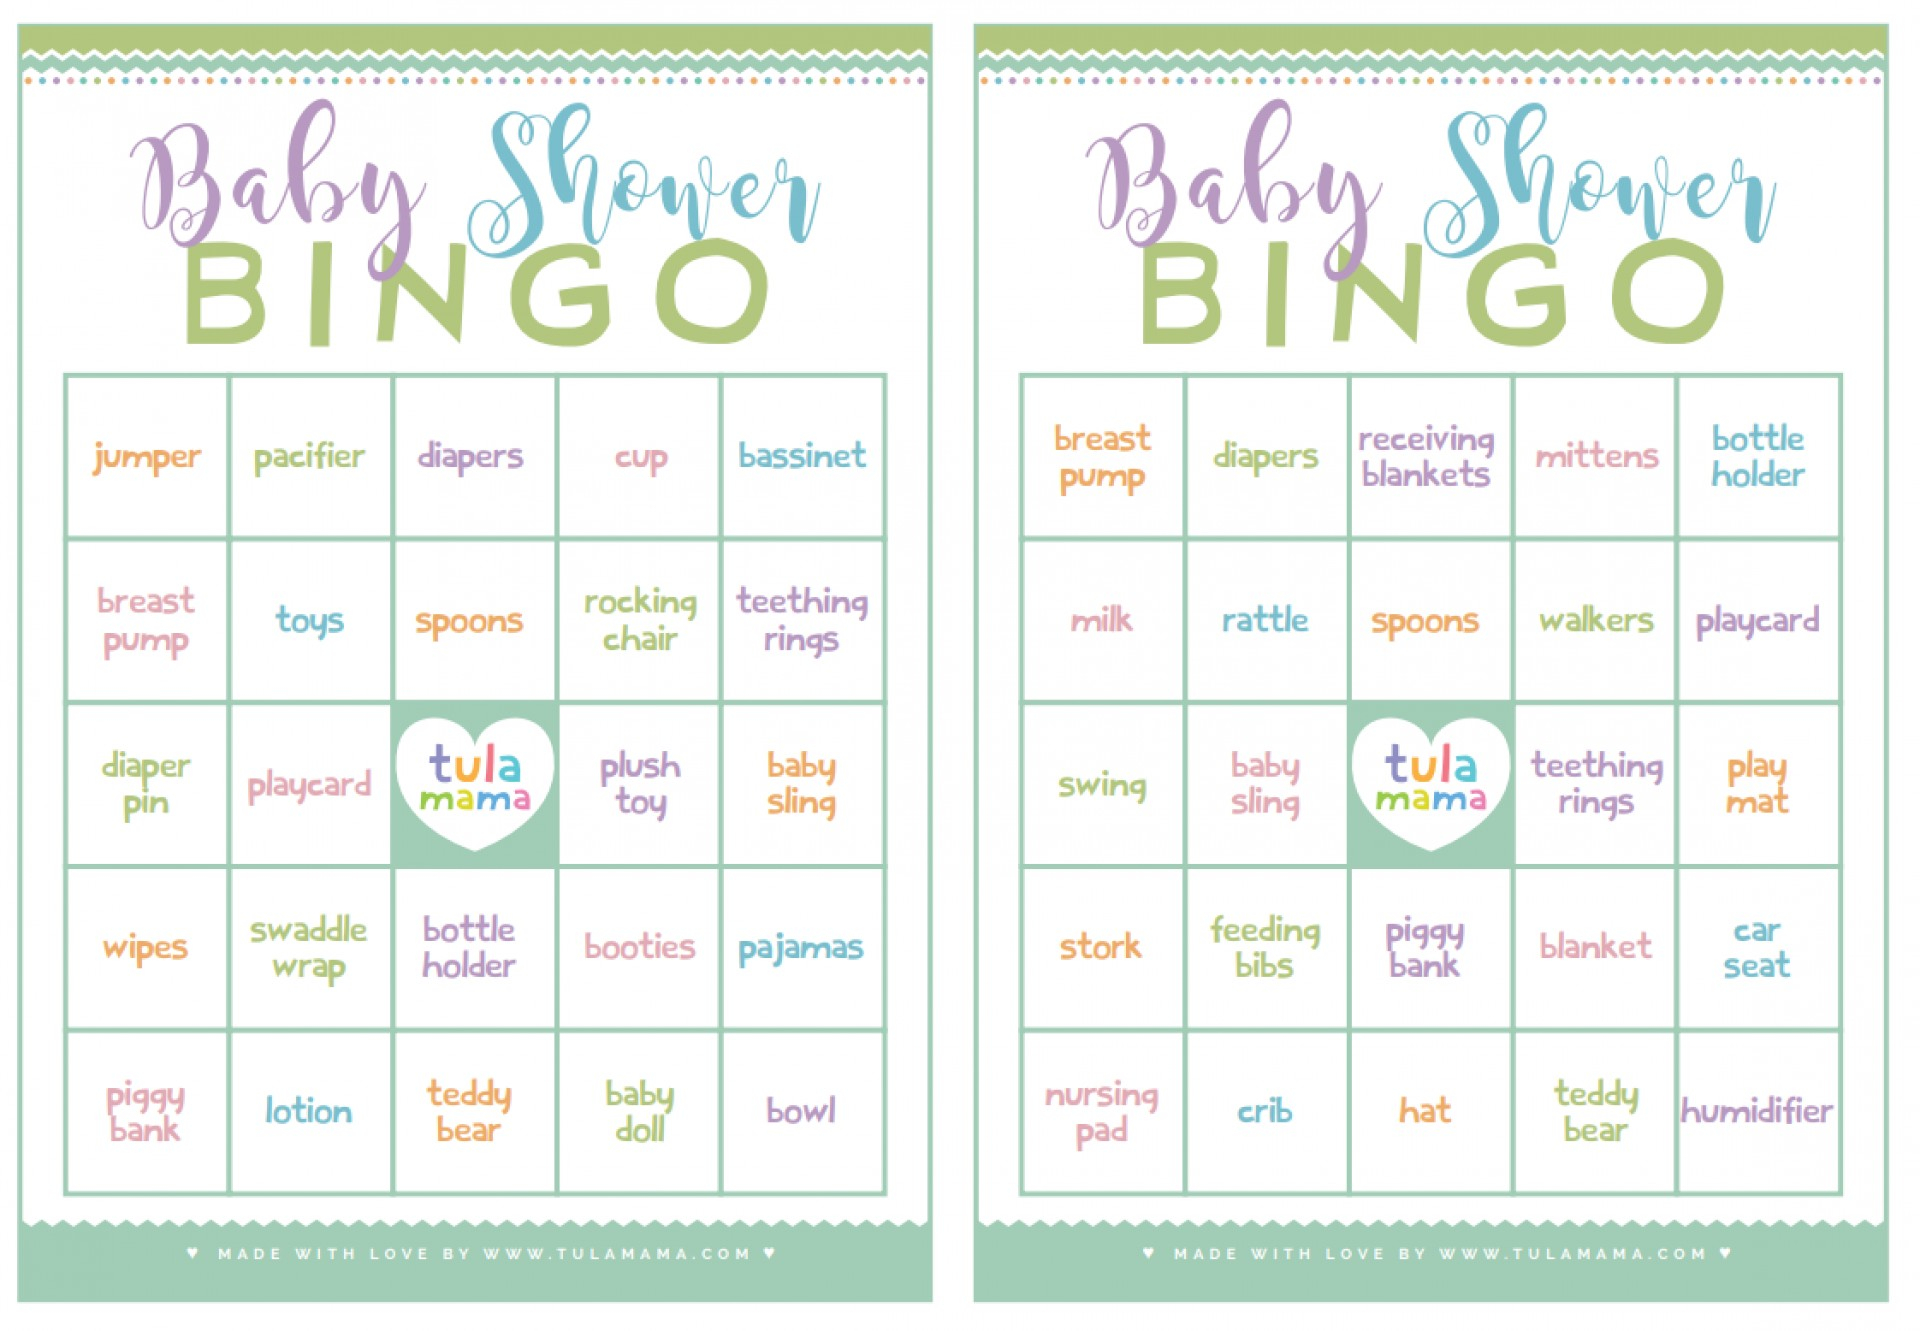 009 Free Dowload Baby Shower Bingo Template Wondrous Ideas Blank - Baby Bingo Free Printable